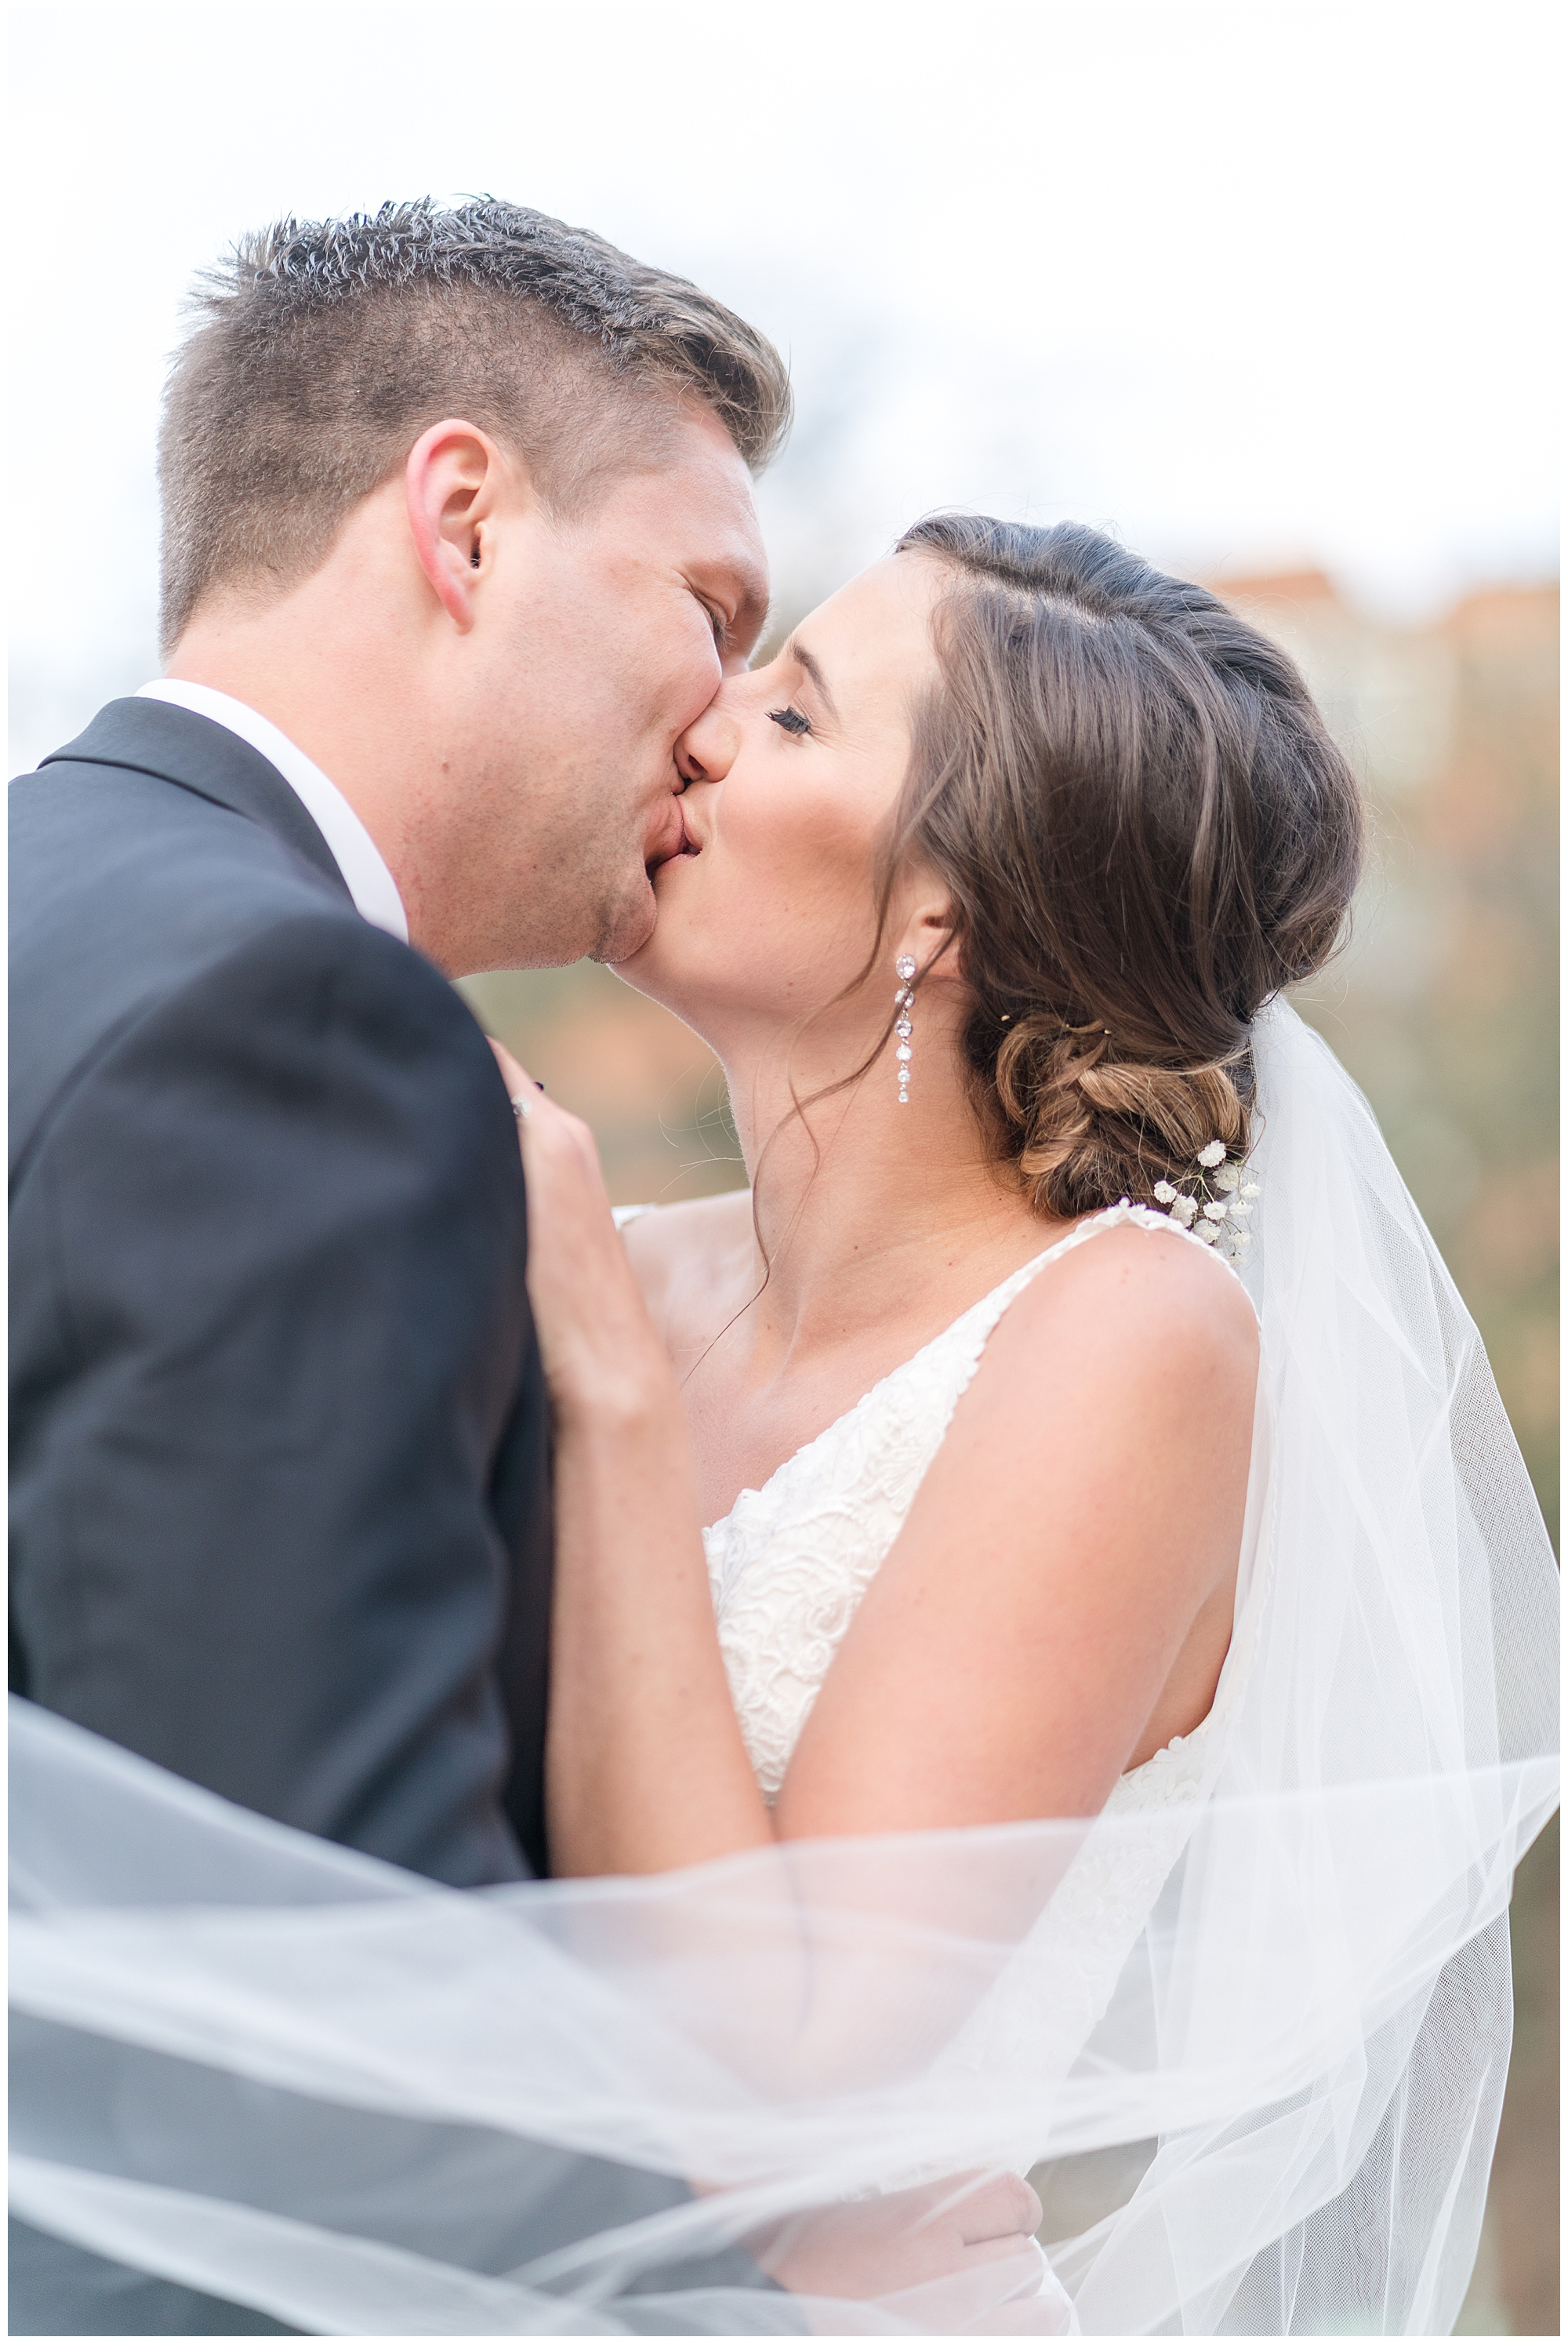 A bride and groom kiss at DuPont Circle during their Washington DC wedding.